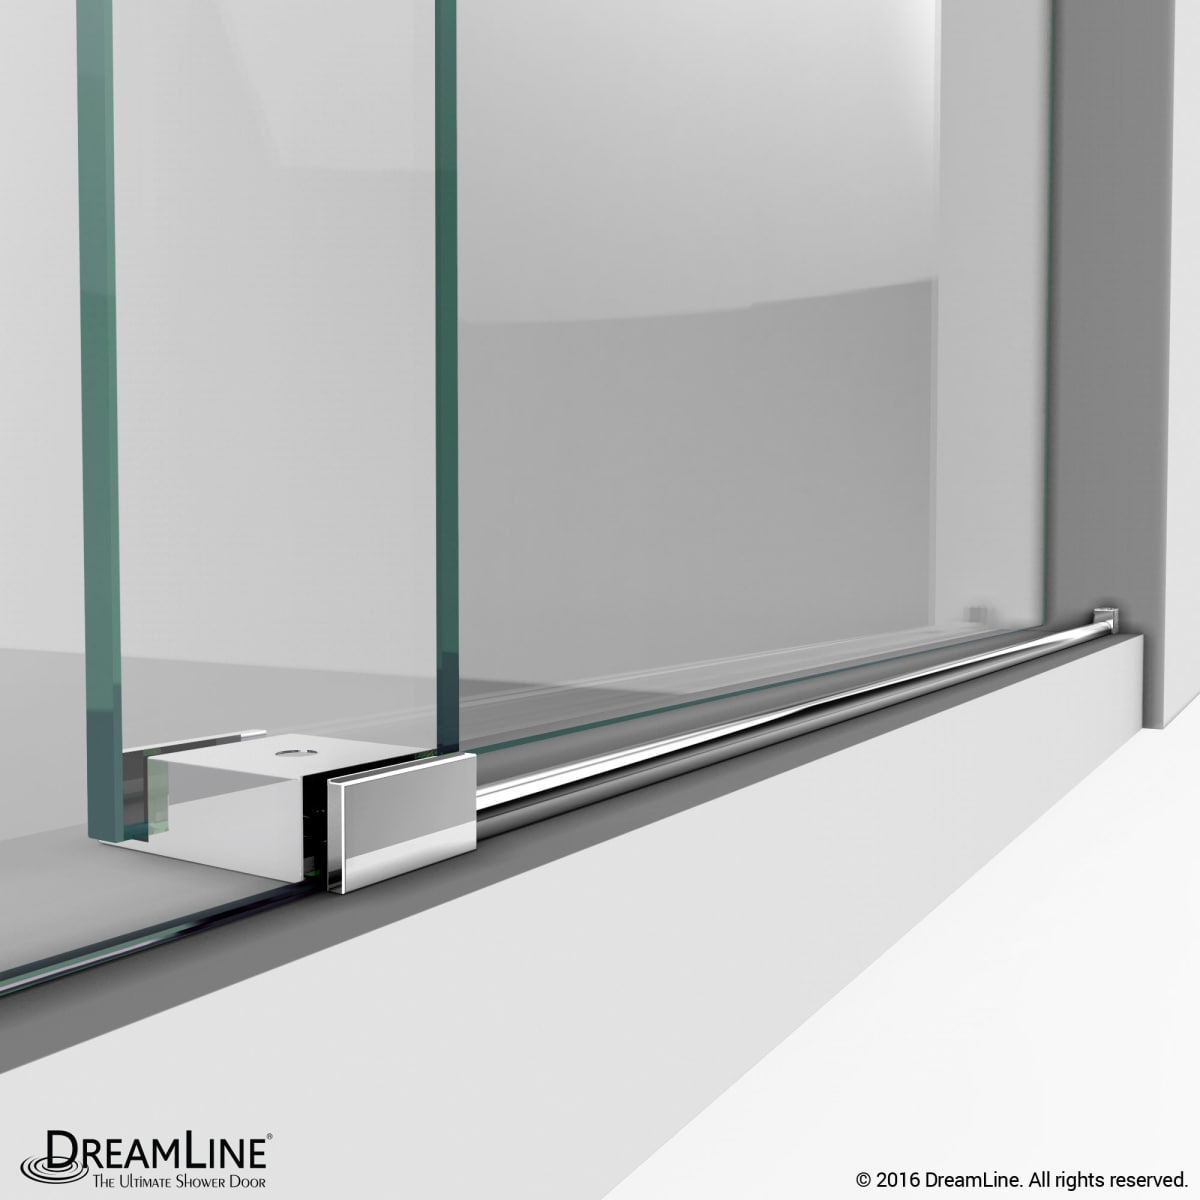 Dreamline Shdr 61487610 07 Brushed Stainless Steel Enigma X 76 High